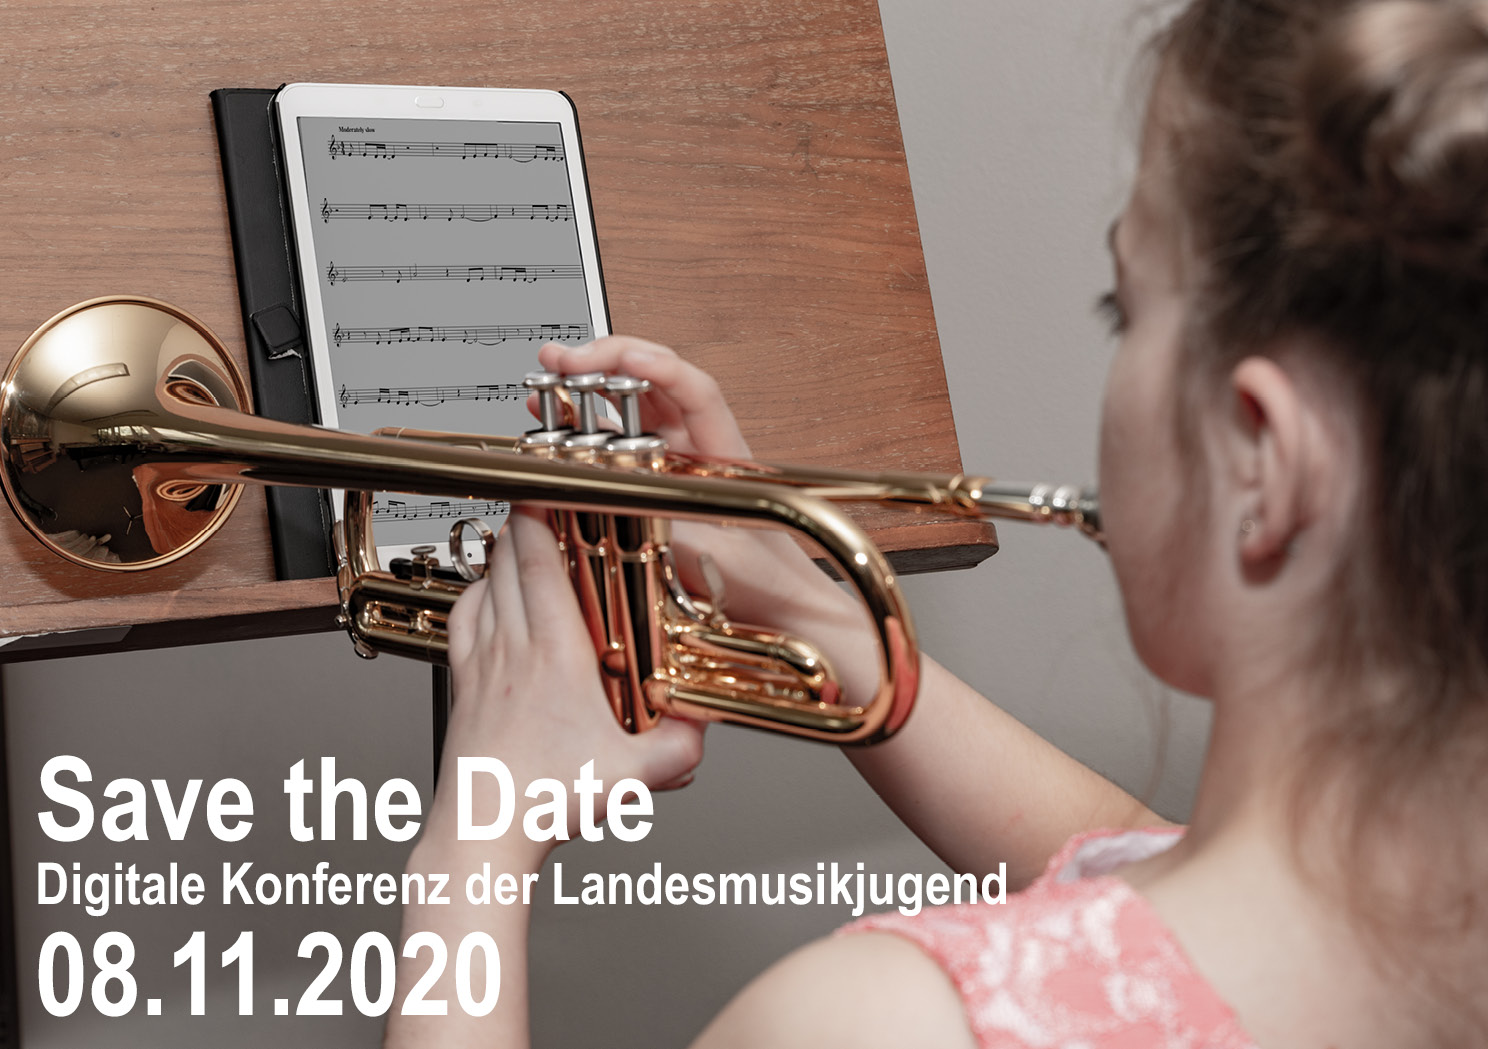 Volle Bandbreite – Digitale Konferenz Der Landesmusikjugend Am 8. November 2020